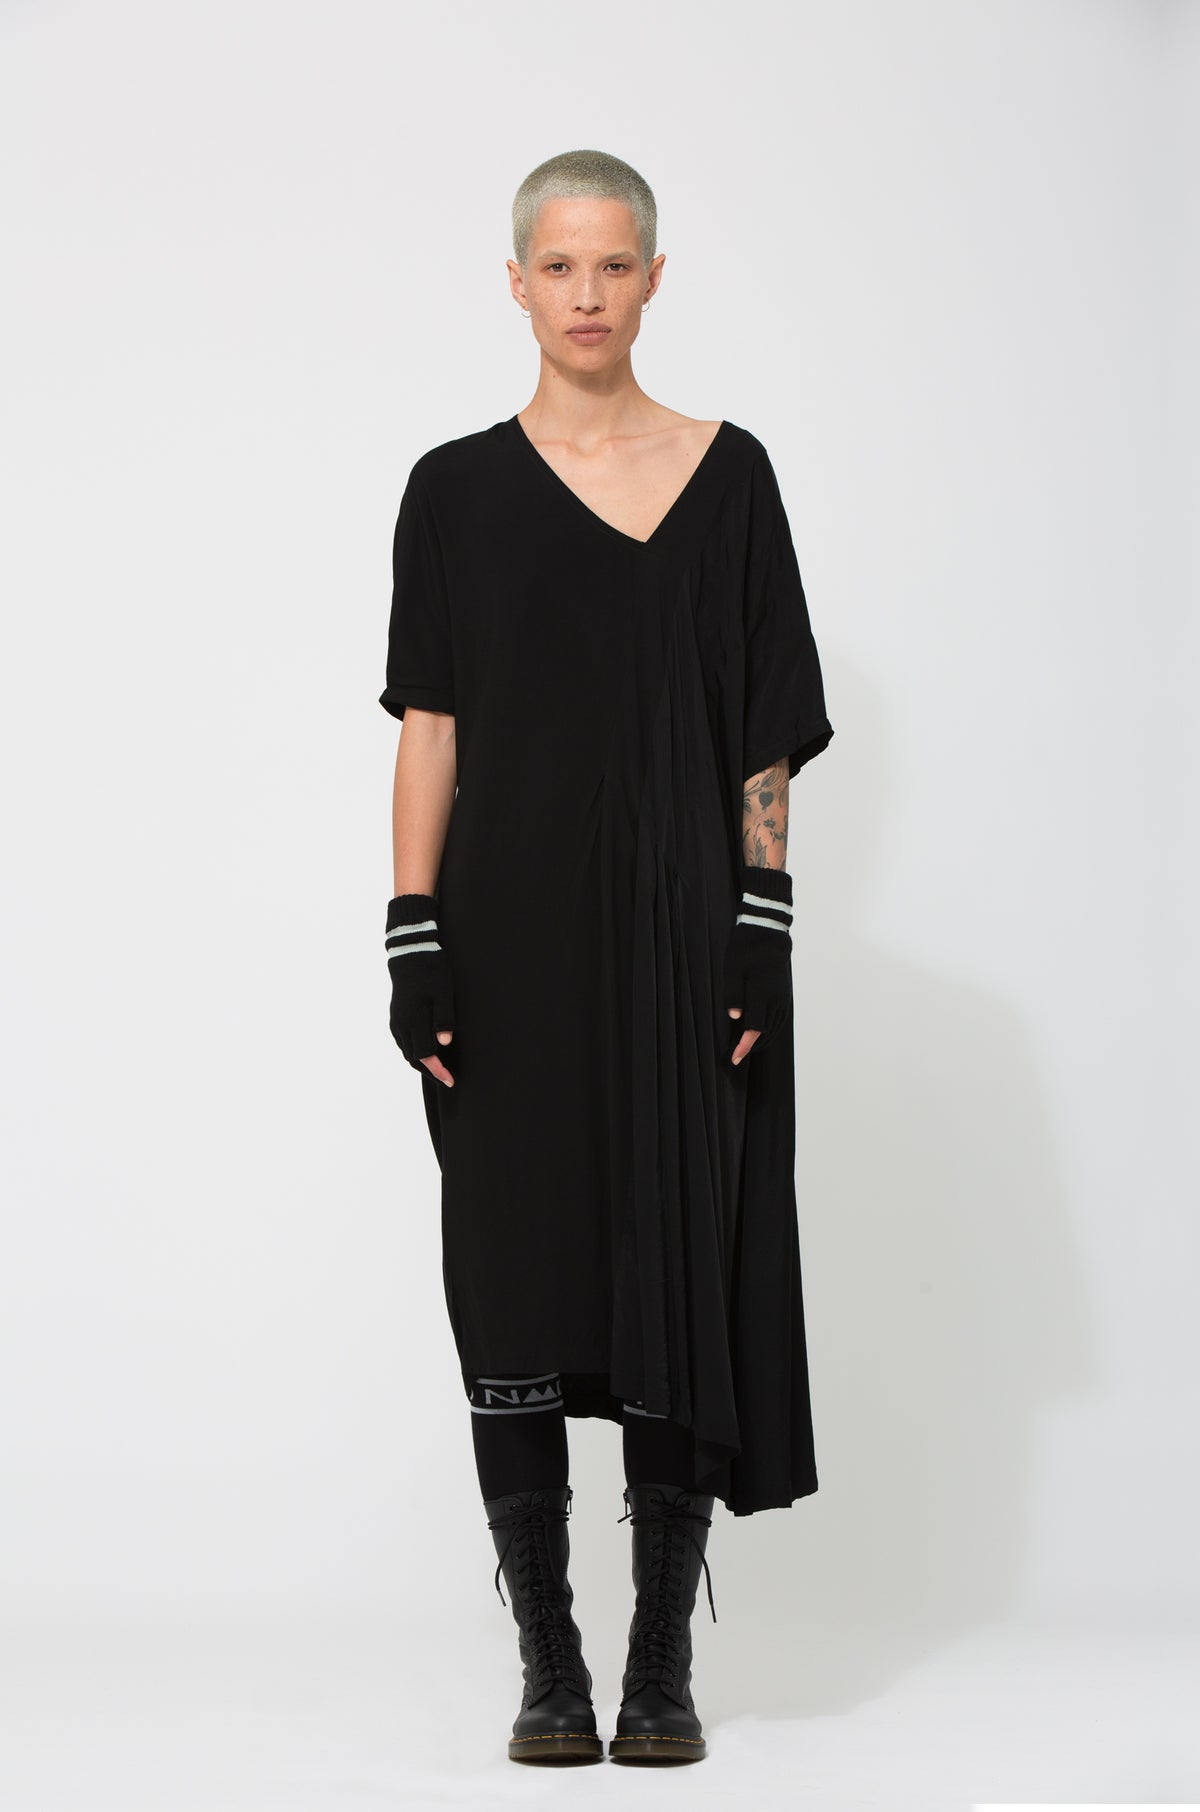 Nom*d BLACK SATIN RAYON Mixte Dress Shop Online Made in new Zealand NZ Designer Clothing Stockists Auckland Shop Online Parnell Nom d Nomd Dunedin Fashion